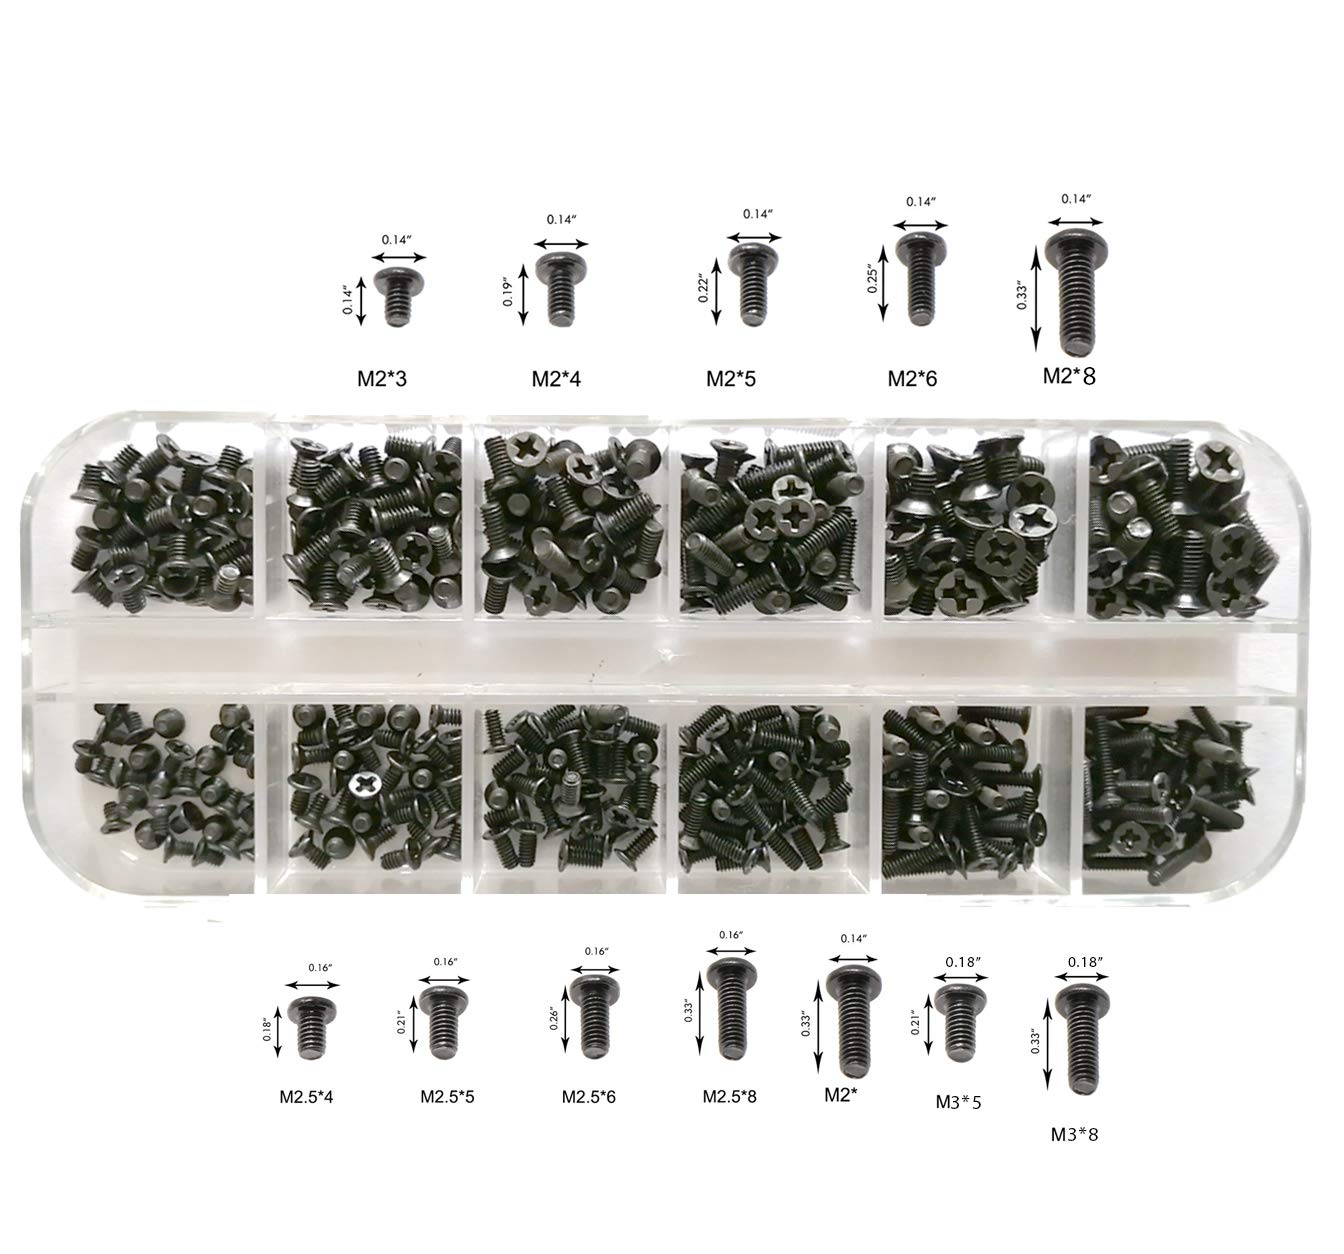 Persberg 360pcs 12sizes Laptop Notebook Computer Replacement Screws Assortment Kit Black,M2 M2.5 M3, for Lenovo Toshiba Gateway Samsung HP IBM Dell Sony Acer Asus SSD Hard Disk SATA SSD(120-169)